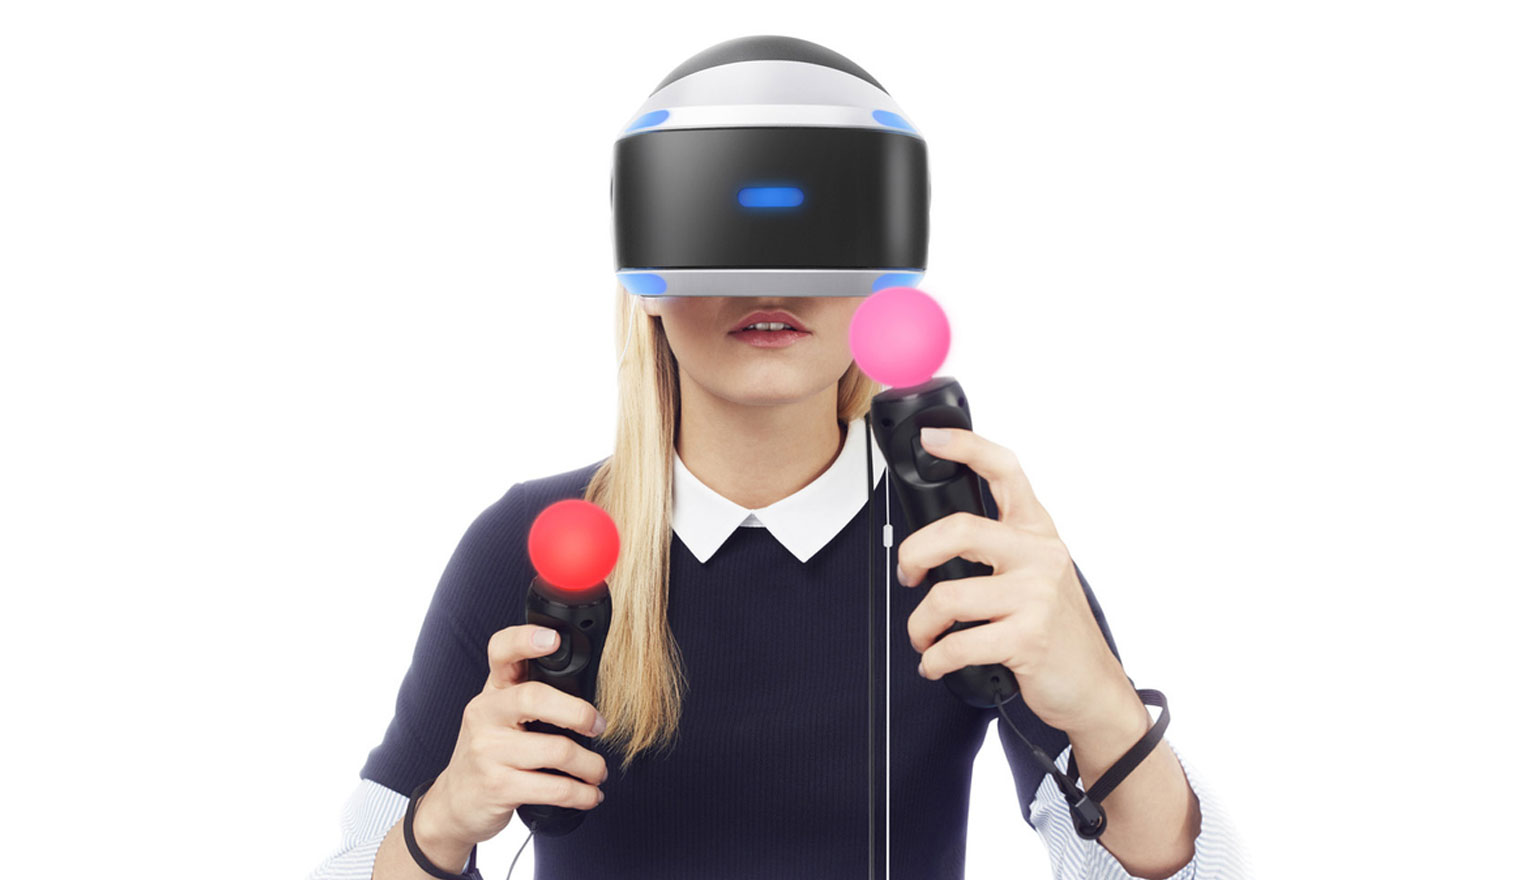 Meer dan 200 games en applicaties in ontwikkeling voor PlayStation VR